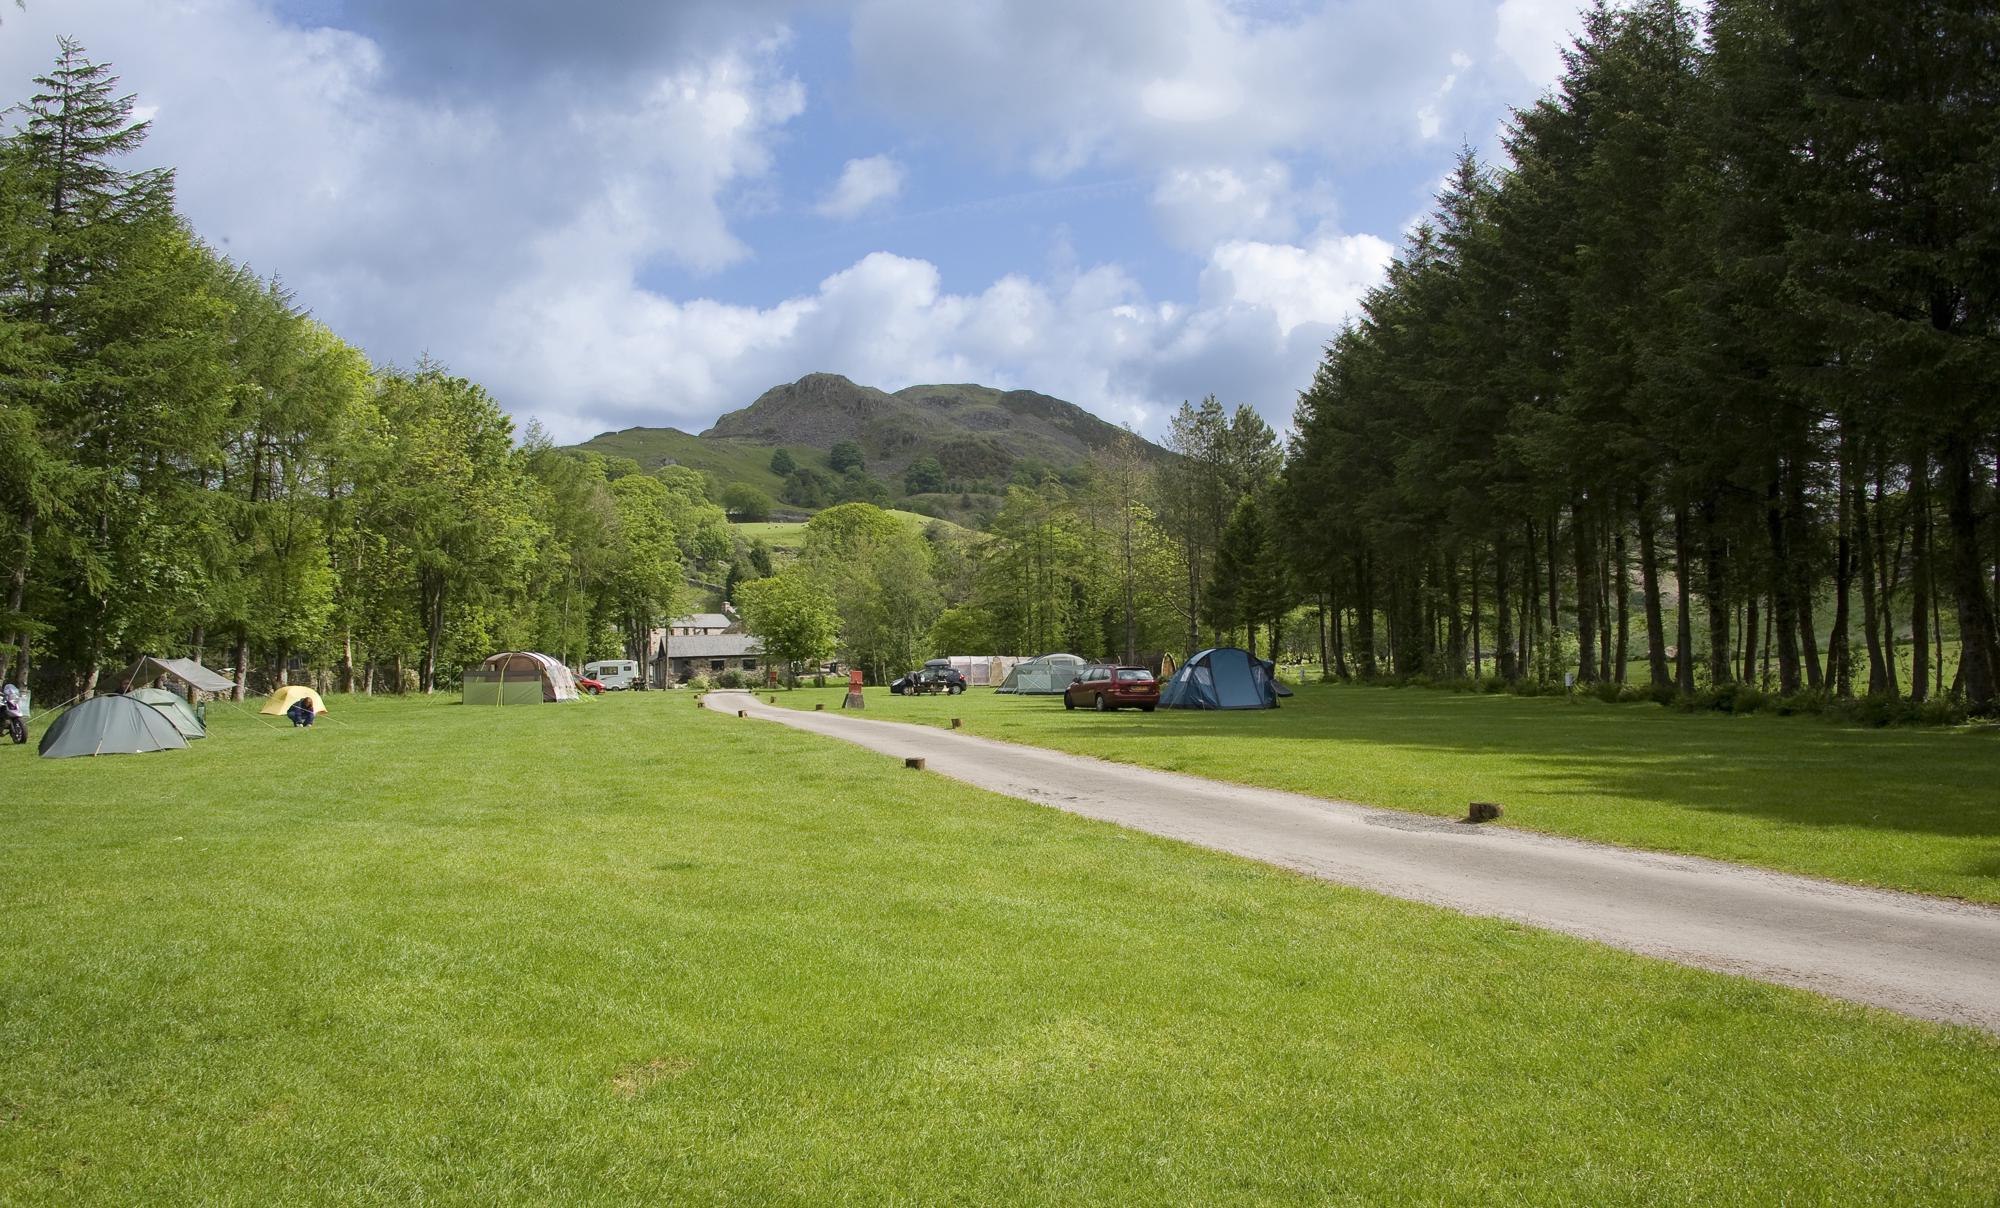 Eskdale Camping – Campsites near Eskdale, Lake District